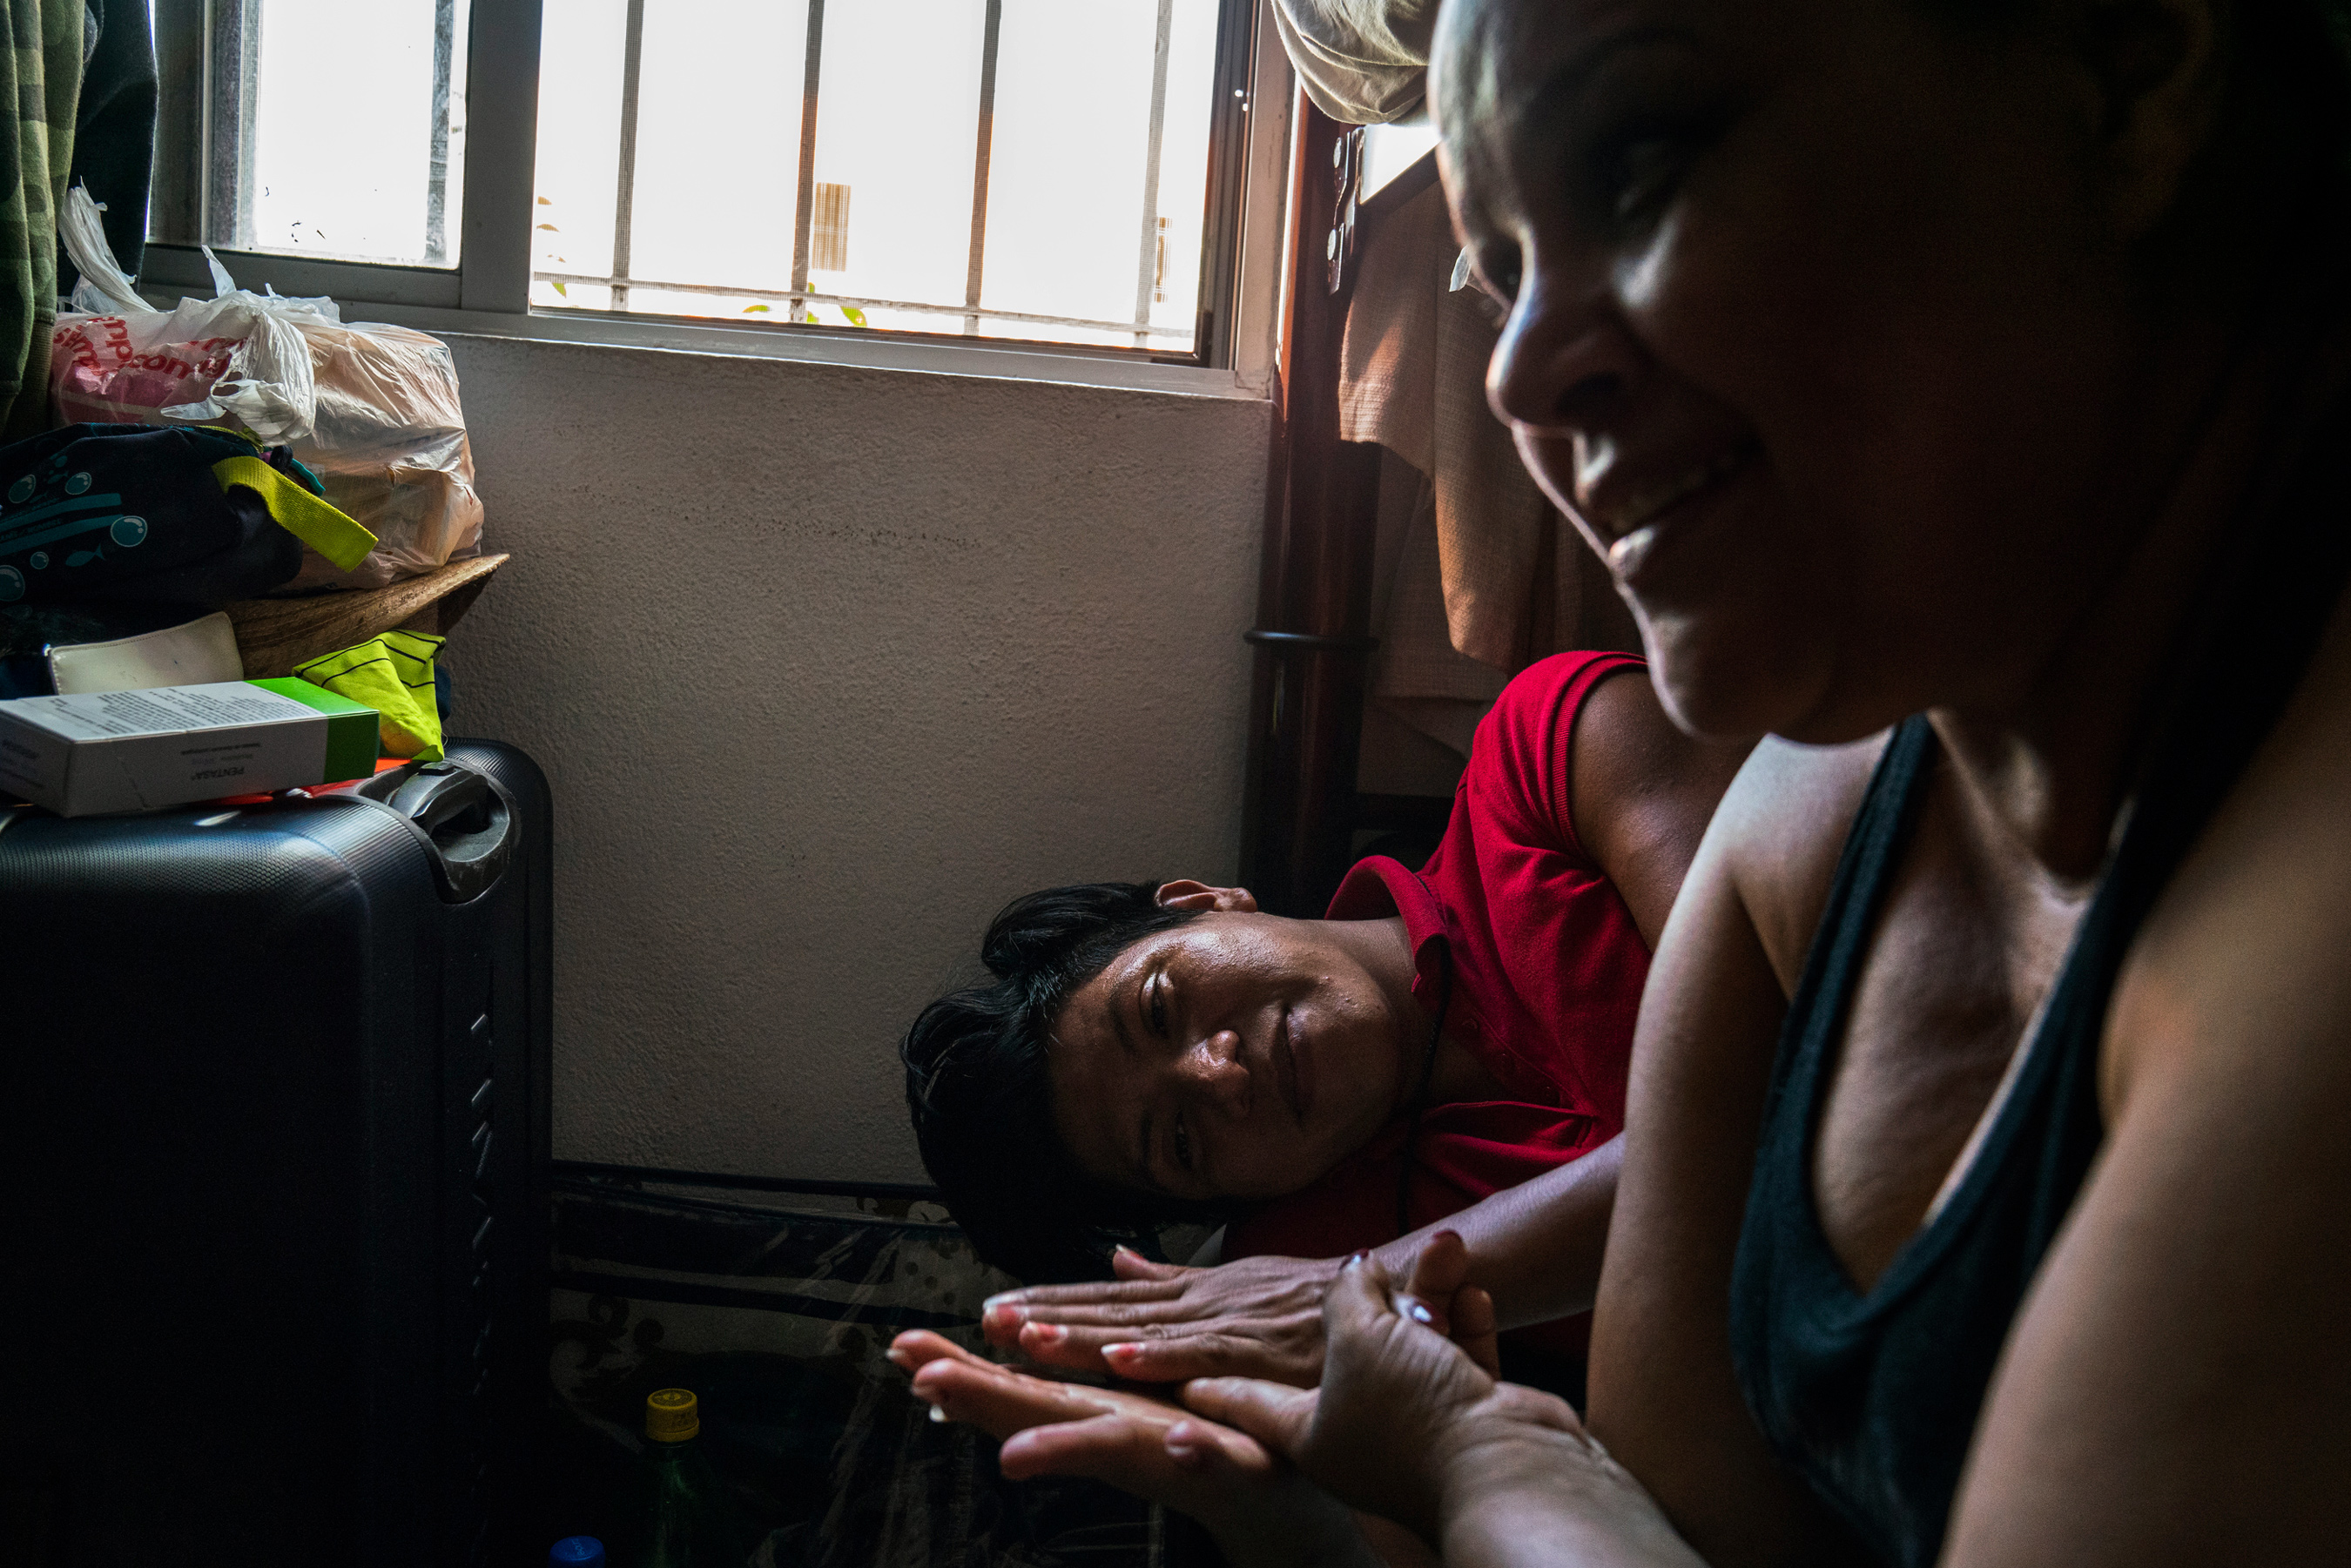 Sandy, 22, left, a trans woman from Guatemala and her friend Tania, 42, from Honduras rest at a shelter in Matamoros, Tamaulipas on Nov. 7, 2018. Sandy has been waiting for four months to seek asylum because Customs and Border Protection, CBP, agents have told her that they are at full capacity.Photo: Verónica G. Cárdenas for The Intercept